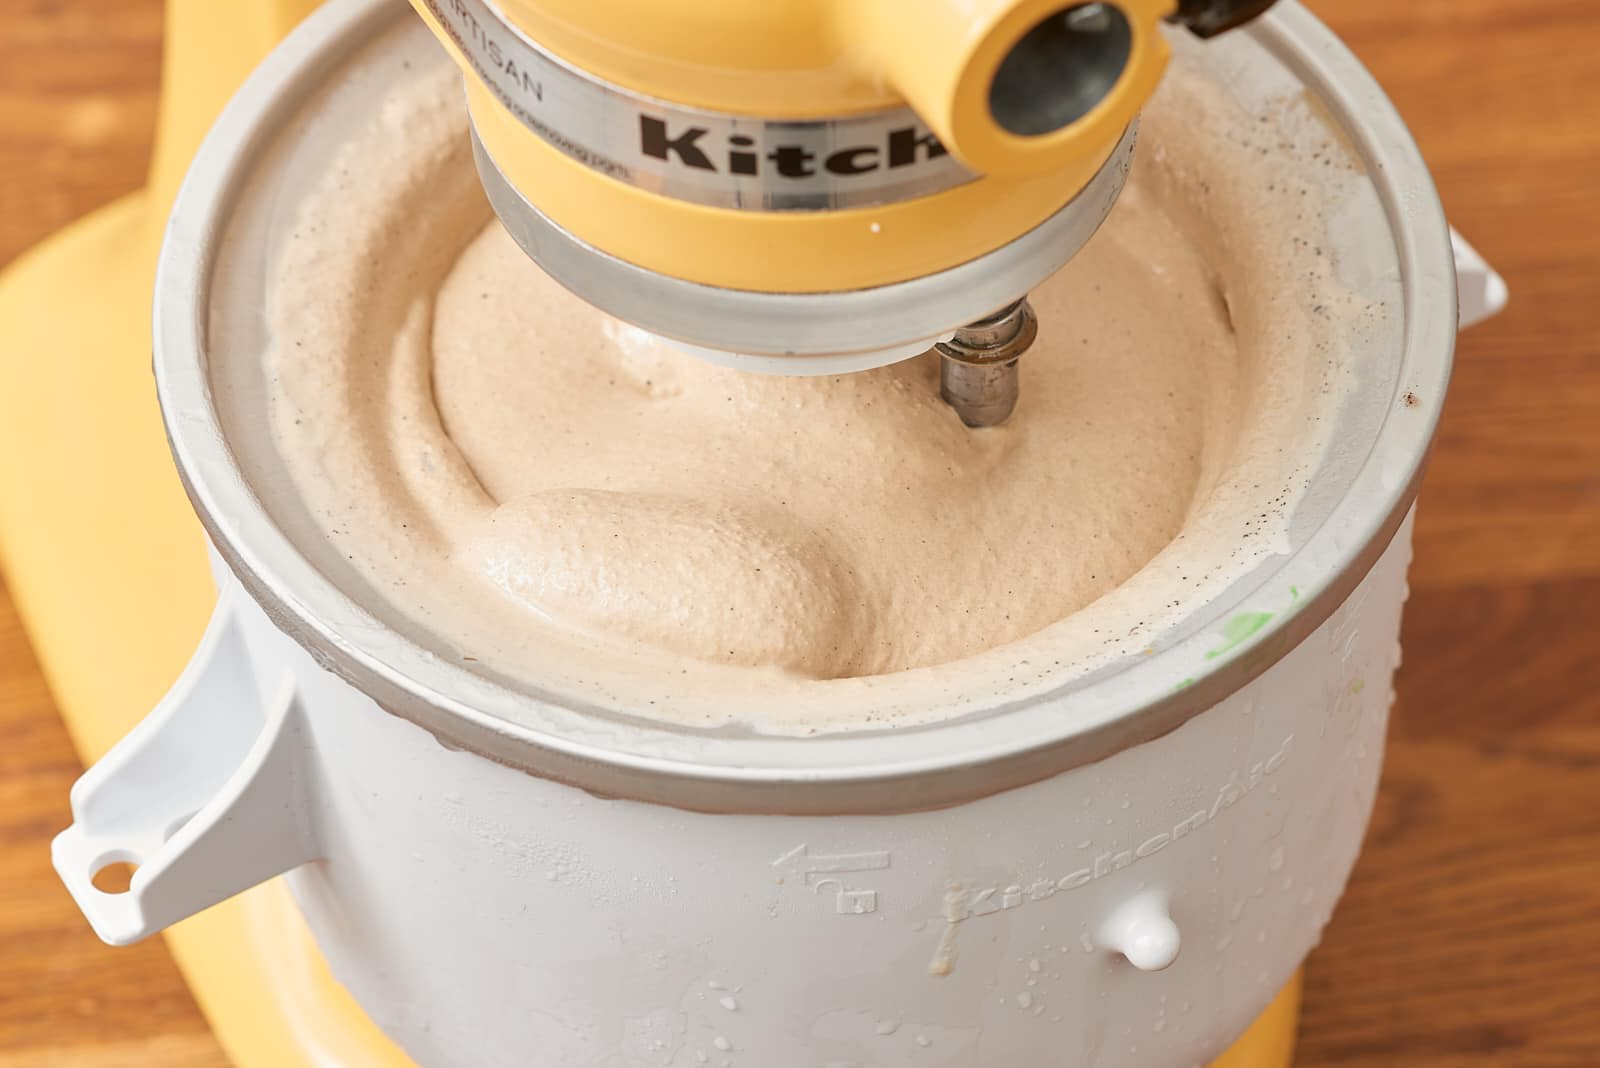 How To Use KitchenAid Ice Cream Makers | Kitchn Ice Cream In Kitchenaid Mixer on chocolate ice cream, washing machine ice cream, 5 quart ice cream, kitchenaid ice cream maker, hamilton beach mixer ice cream, kitchenaid pasta maker, kitchenaid ice cream attachment cheap, orange sherbet ice cream, ice cream ice cream, coffee ice cream, chicken ice cream, kitchenaid paddle attachment, easter ice cream, kitchenaid mixers on sale, pasta ice cream, hand mixers ice cream, recipes ice cream, candy ice cream, soft serve ice cream, refrigerator ice cream,